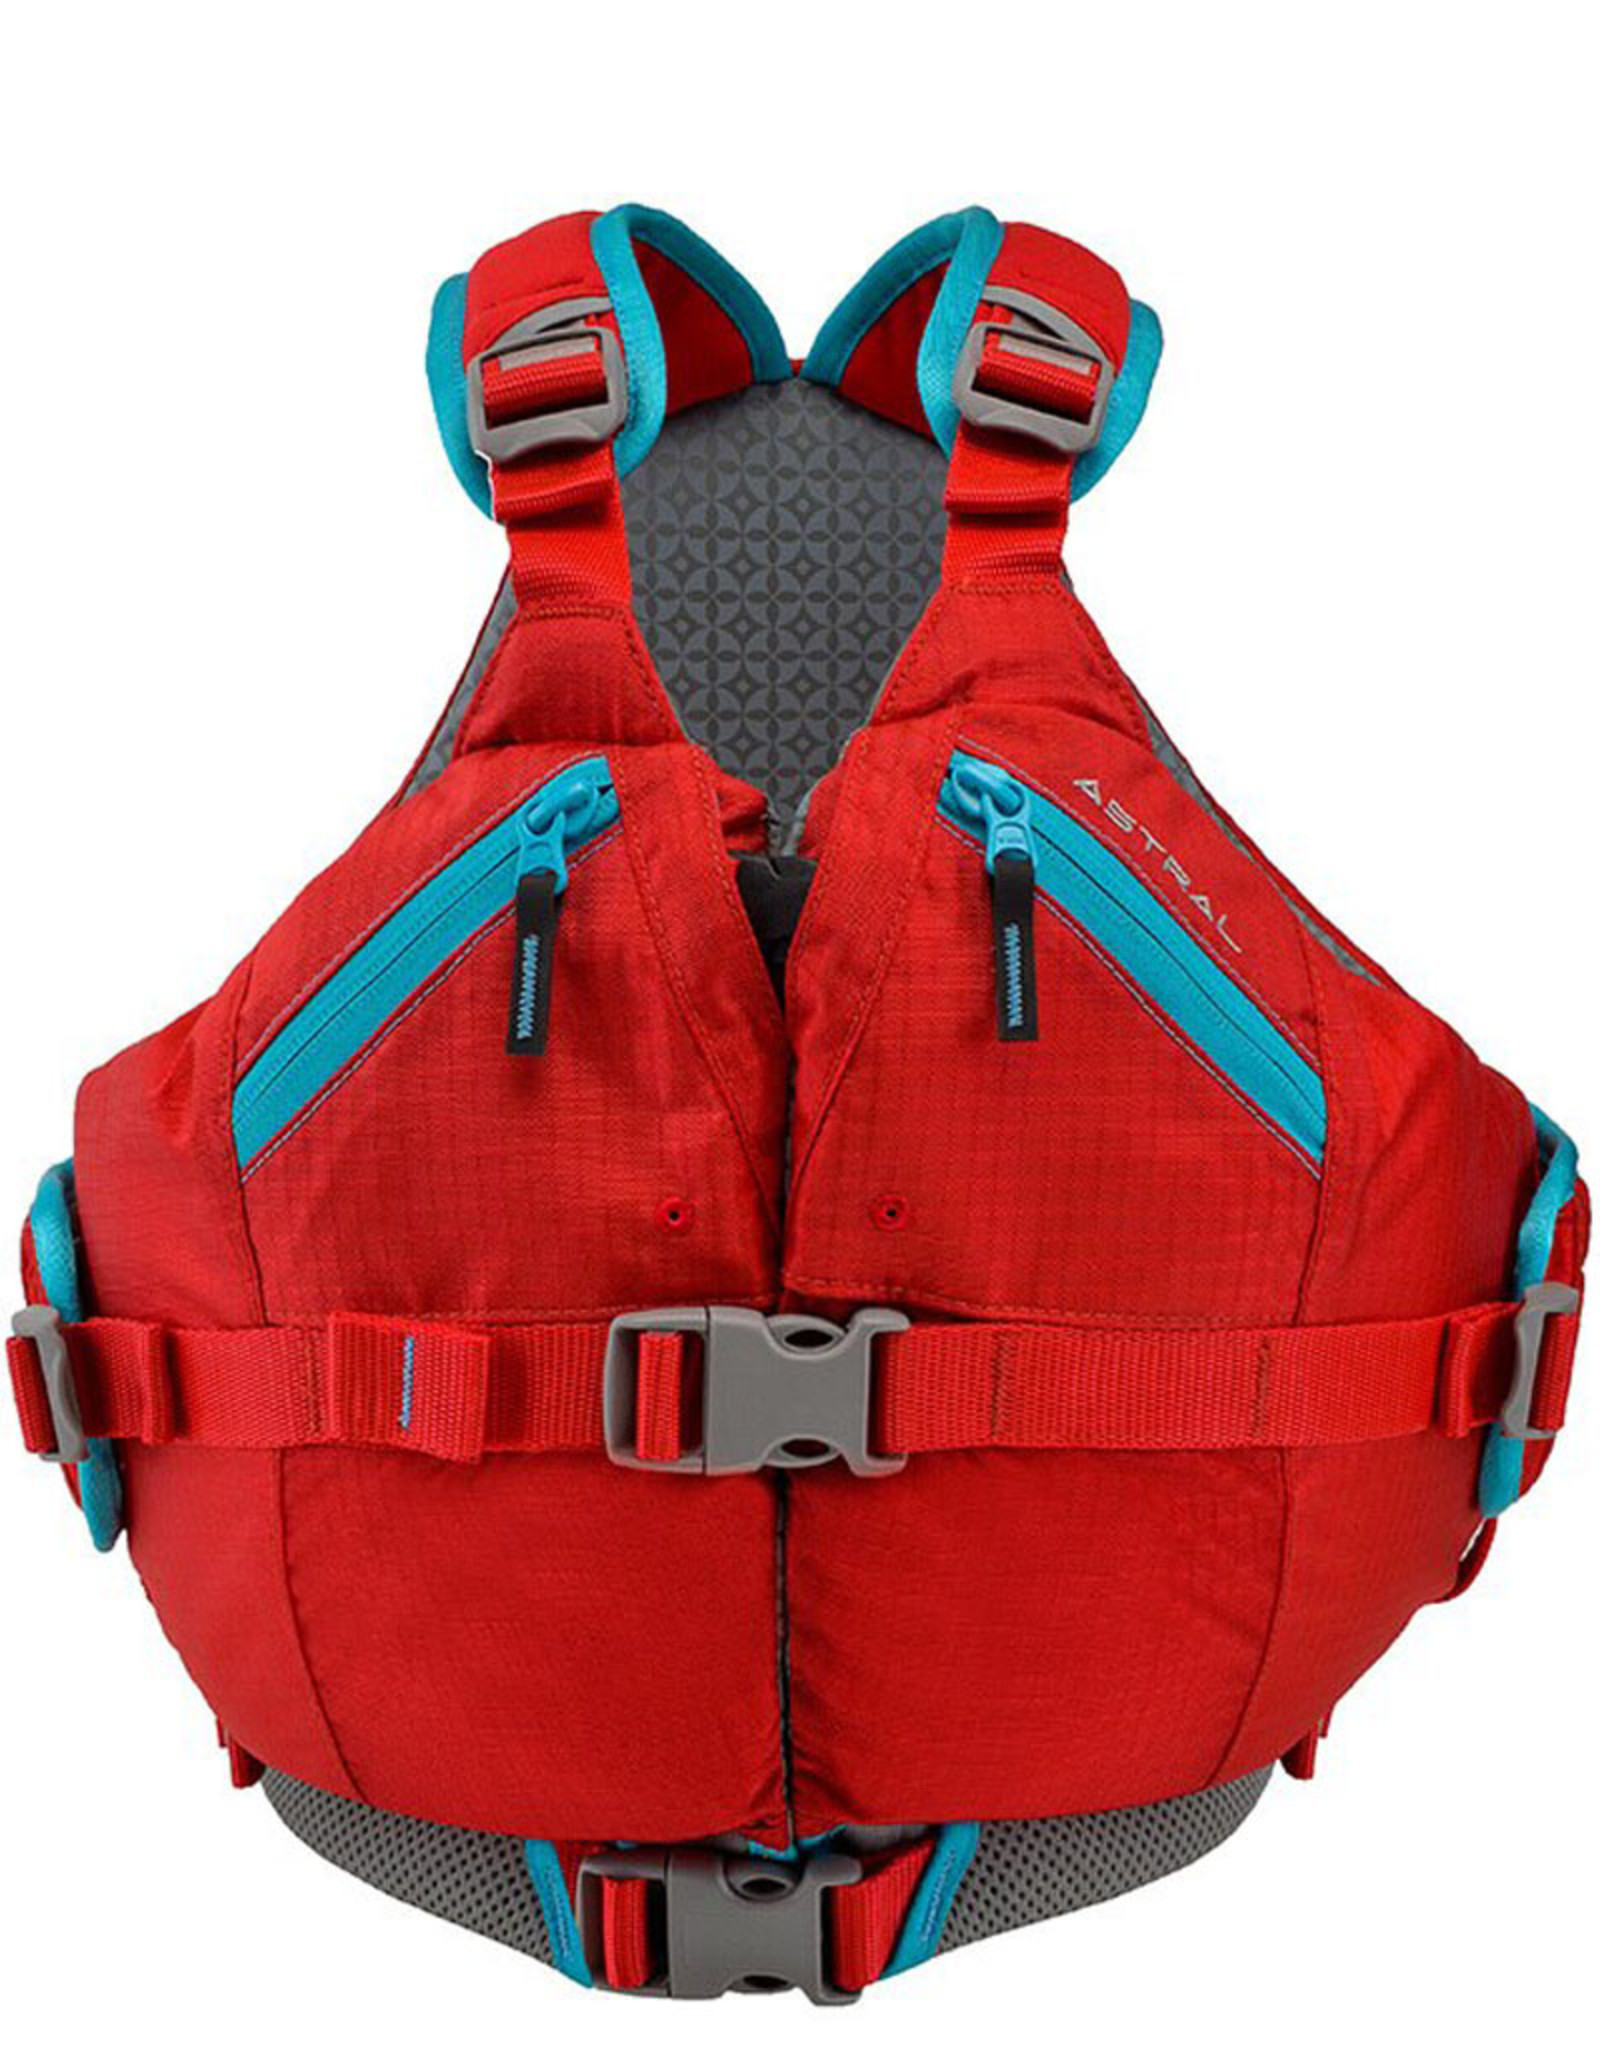 Astral Astral Otter 2.0 Youth PFD